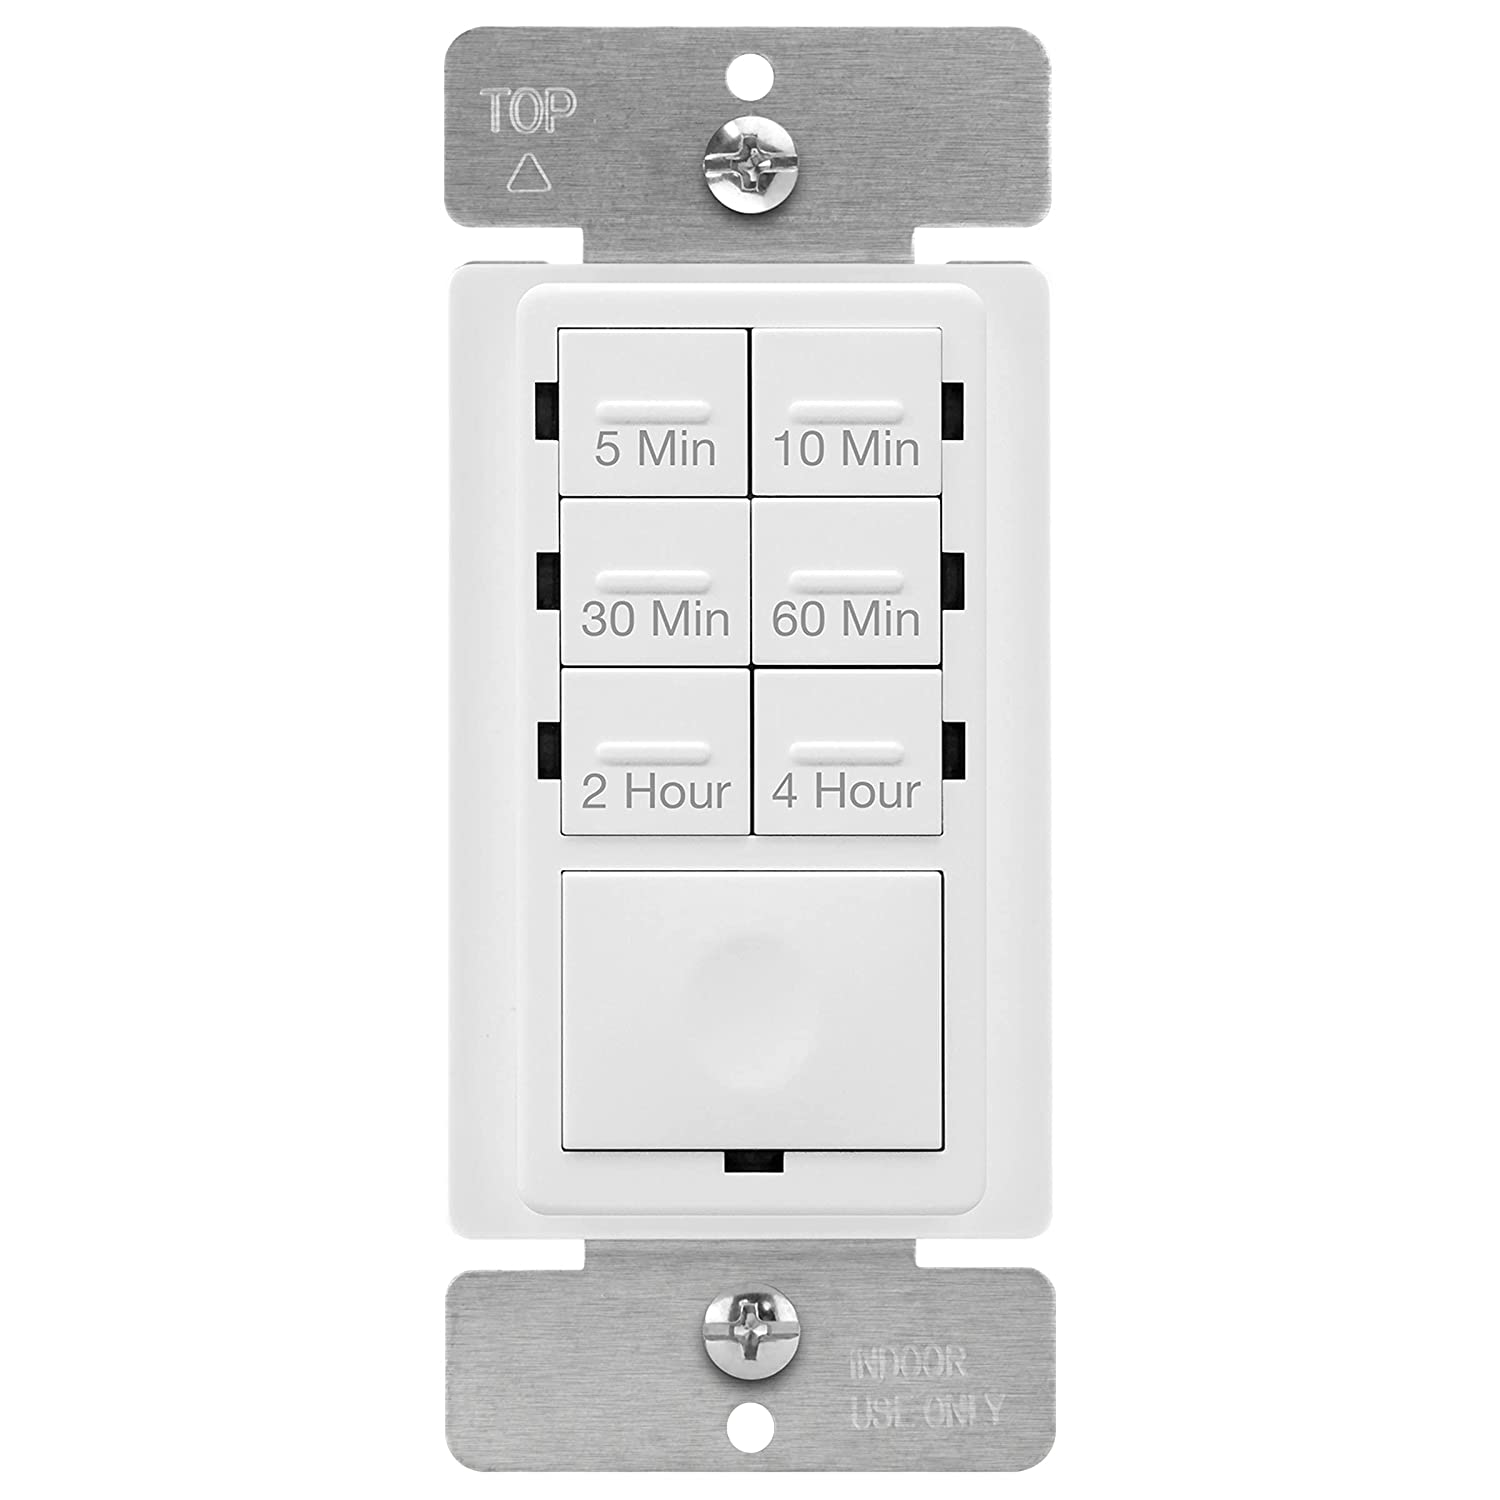 ENERLITES Countdown Timer Switch, Fan Switch Timer, Wall Light Timer  Switch, Bathroom Timer Switch, 20 min – 20 hours, Night Light LED Indicator,  ...